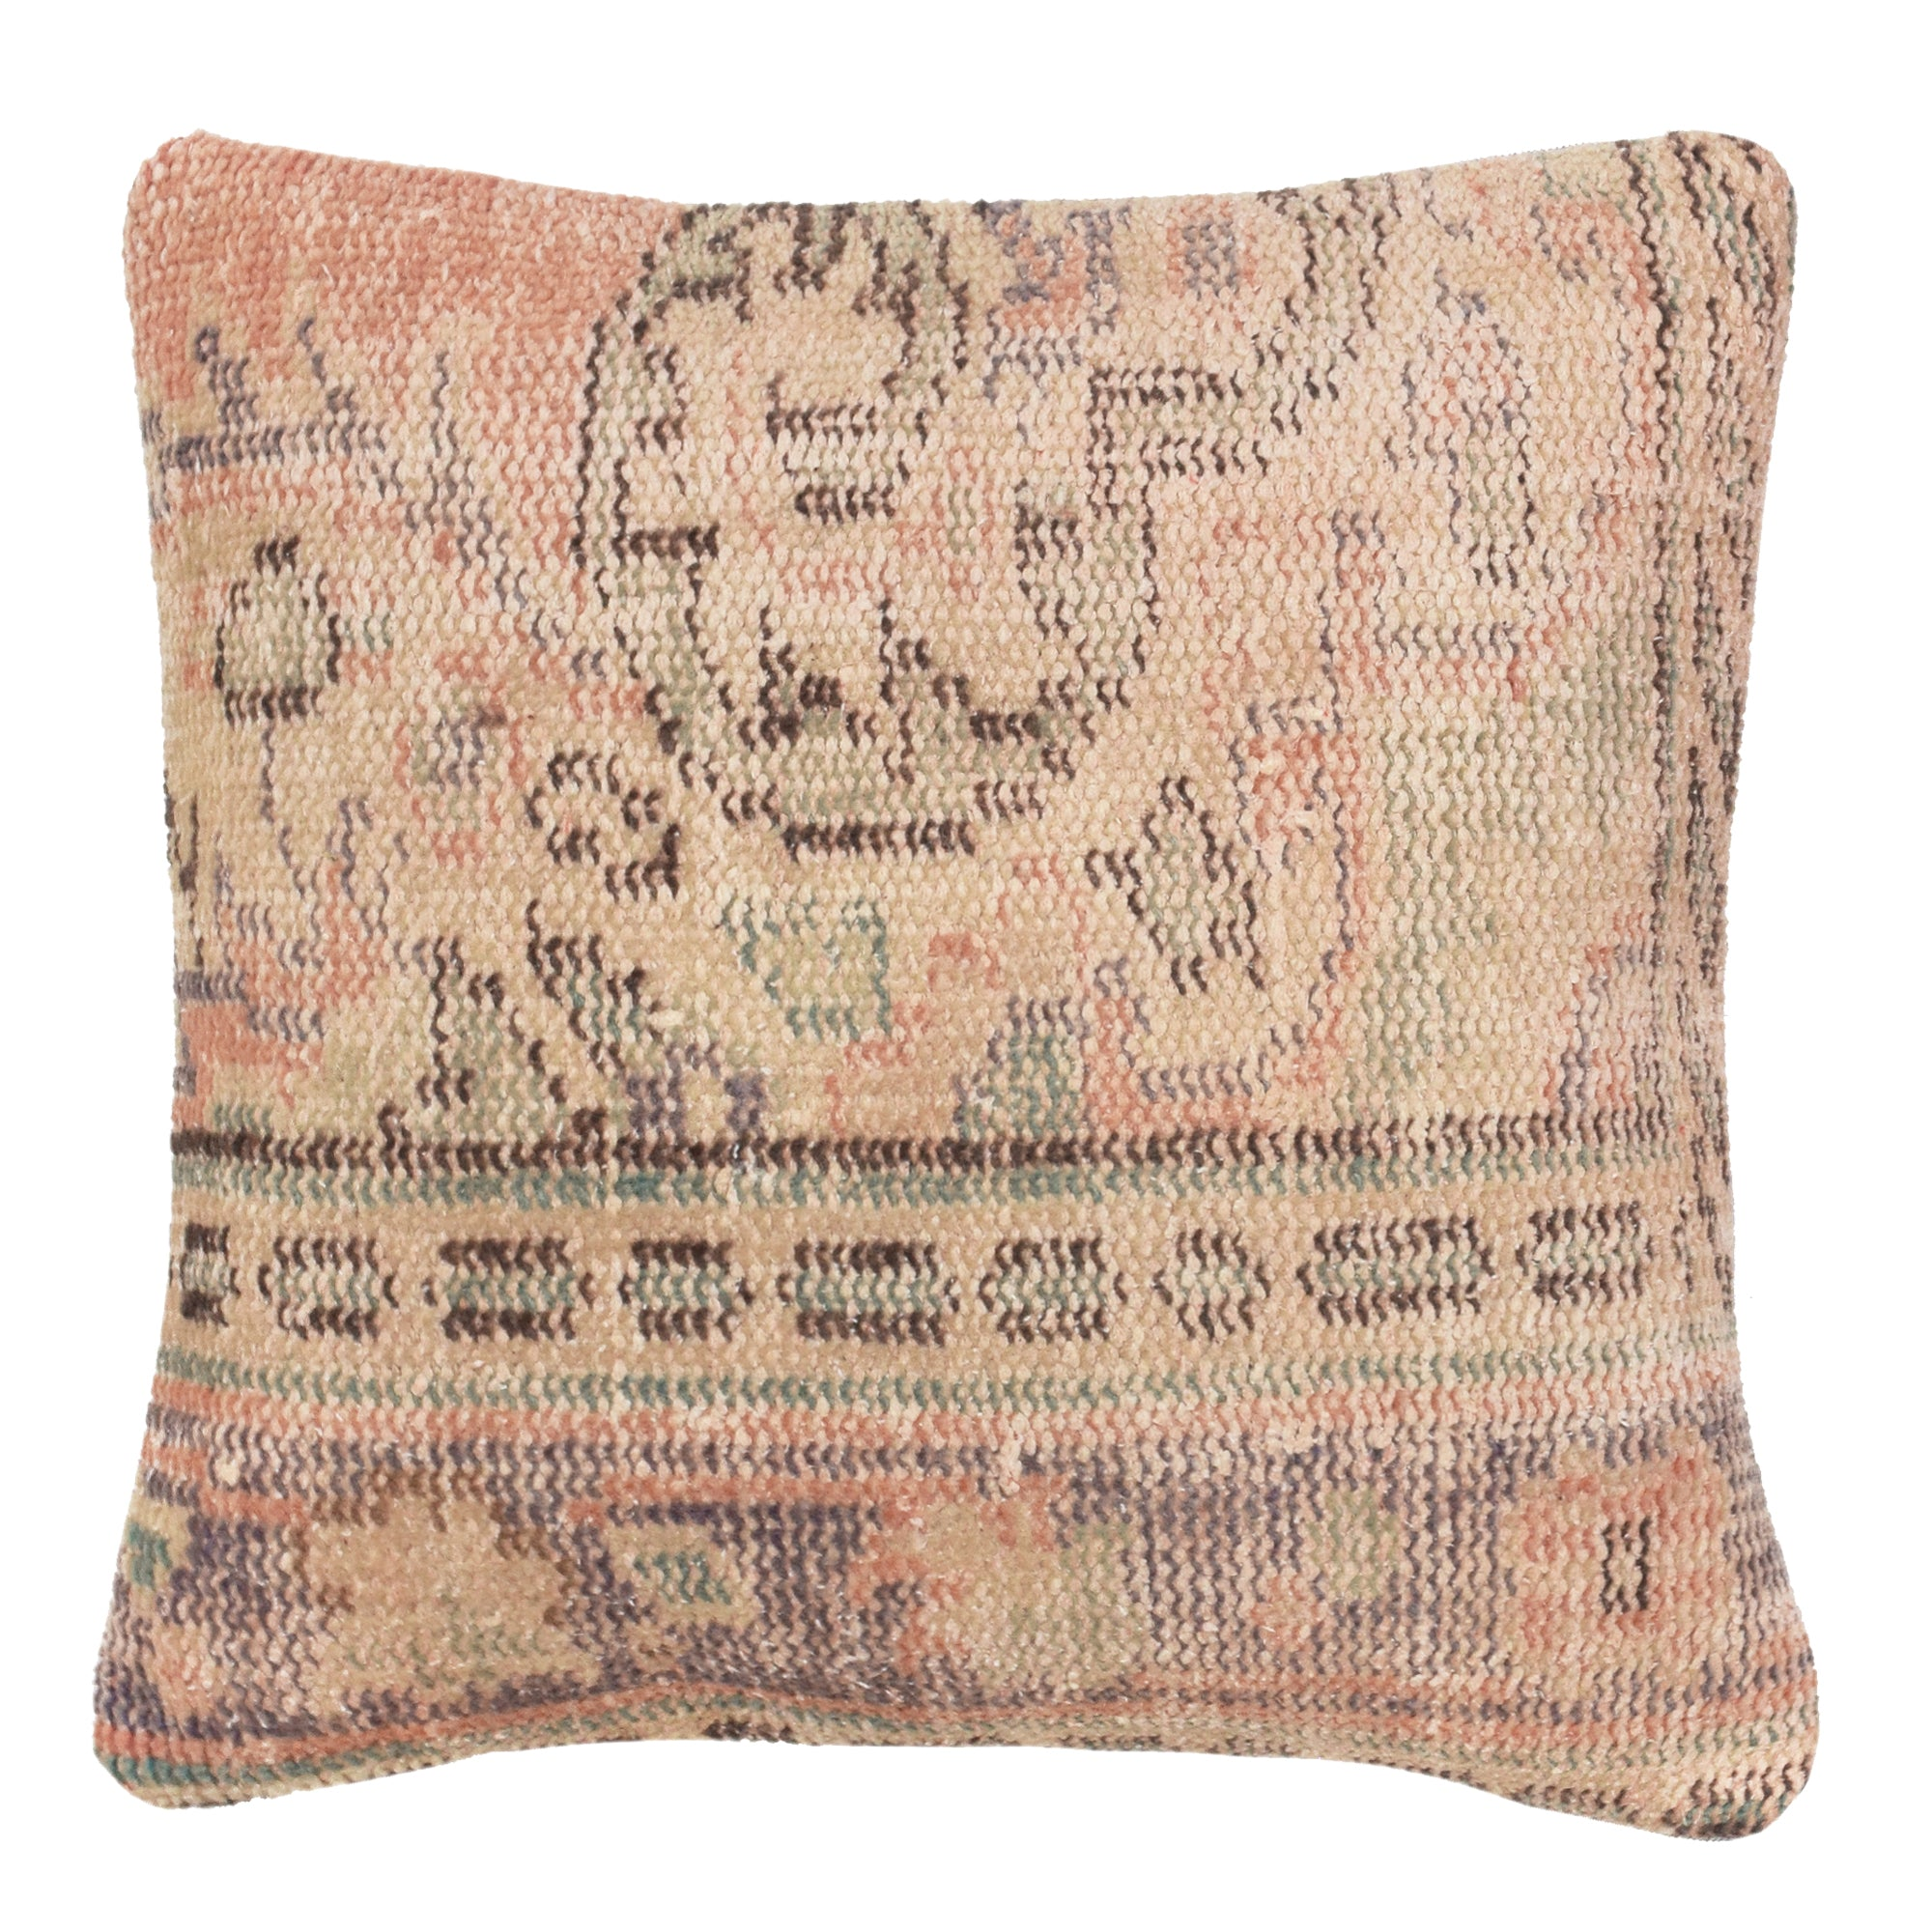 yonder living vintage kilim cushion peach sage green lilac sand